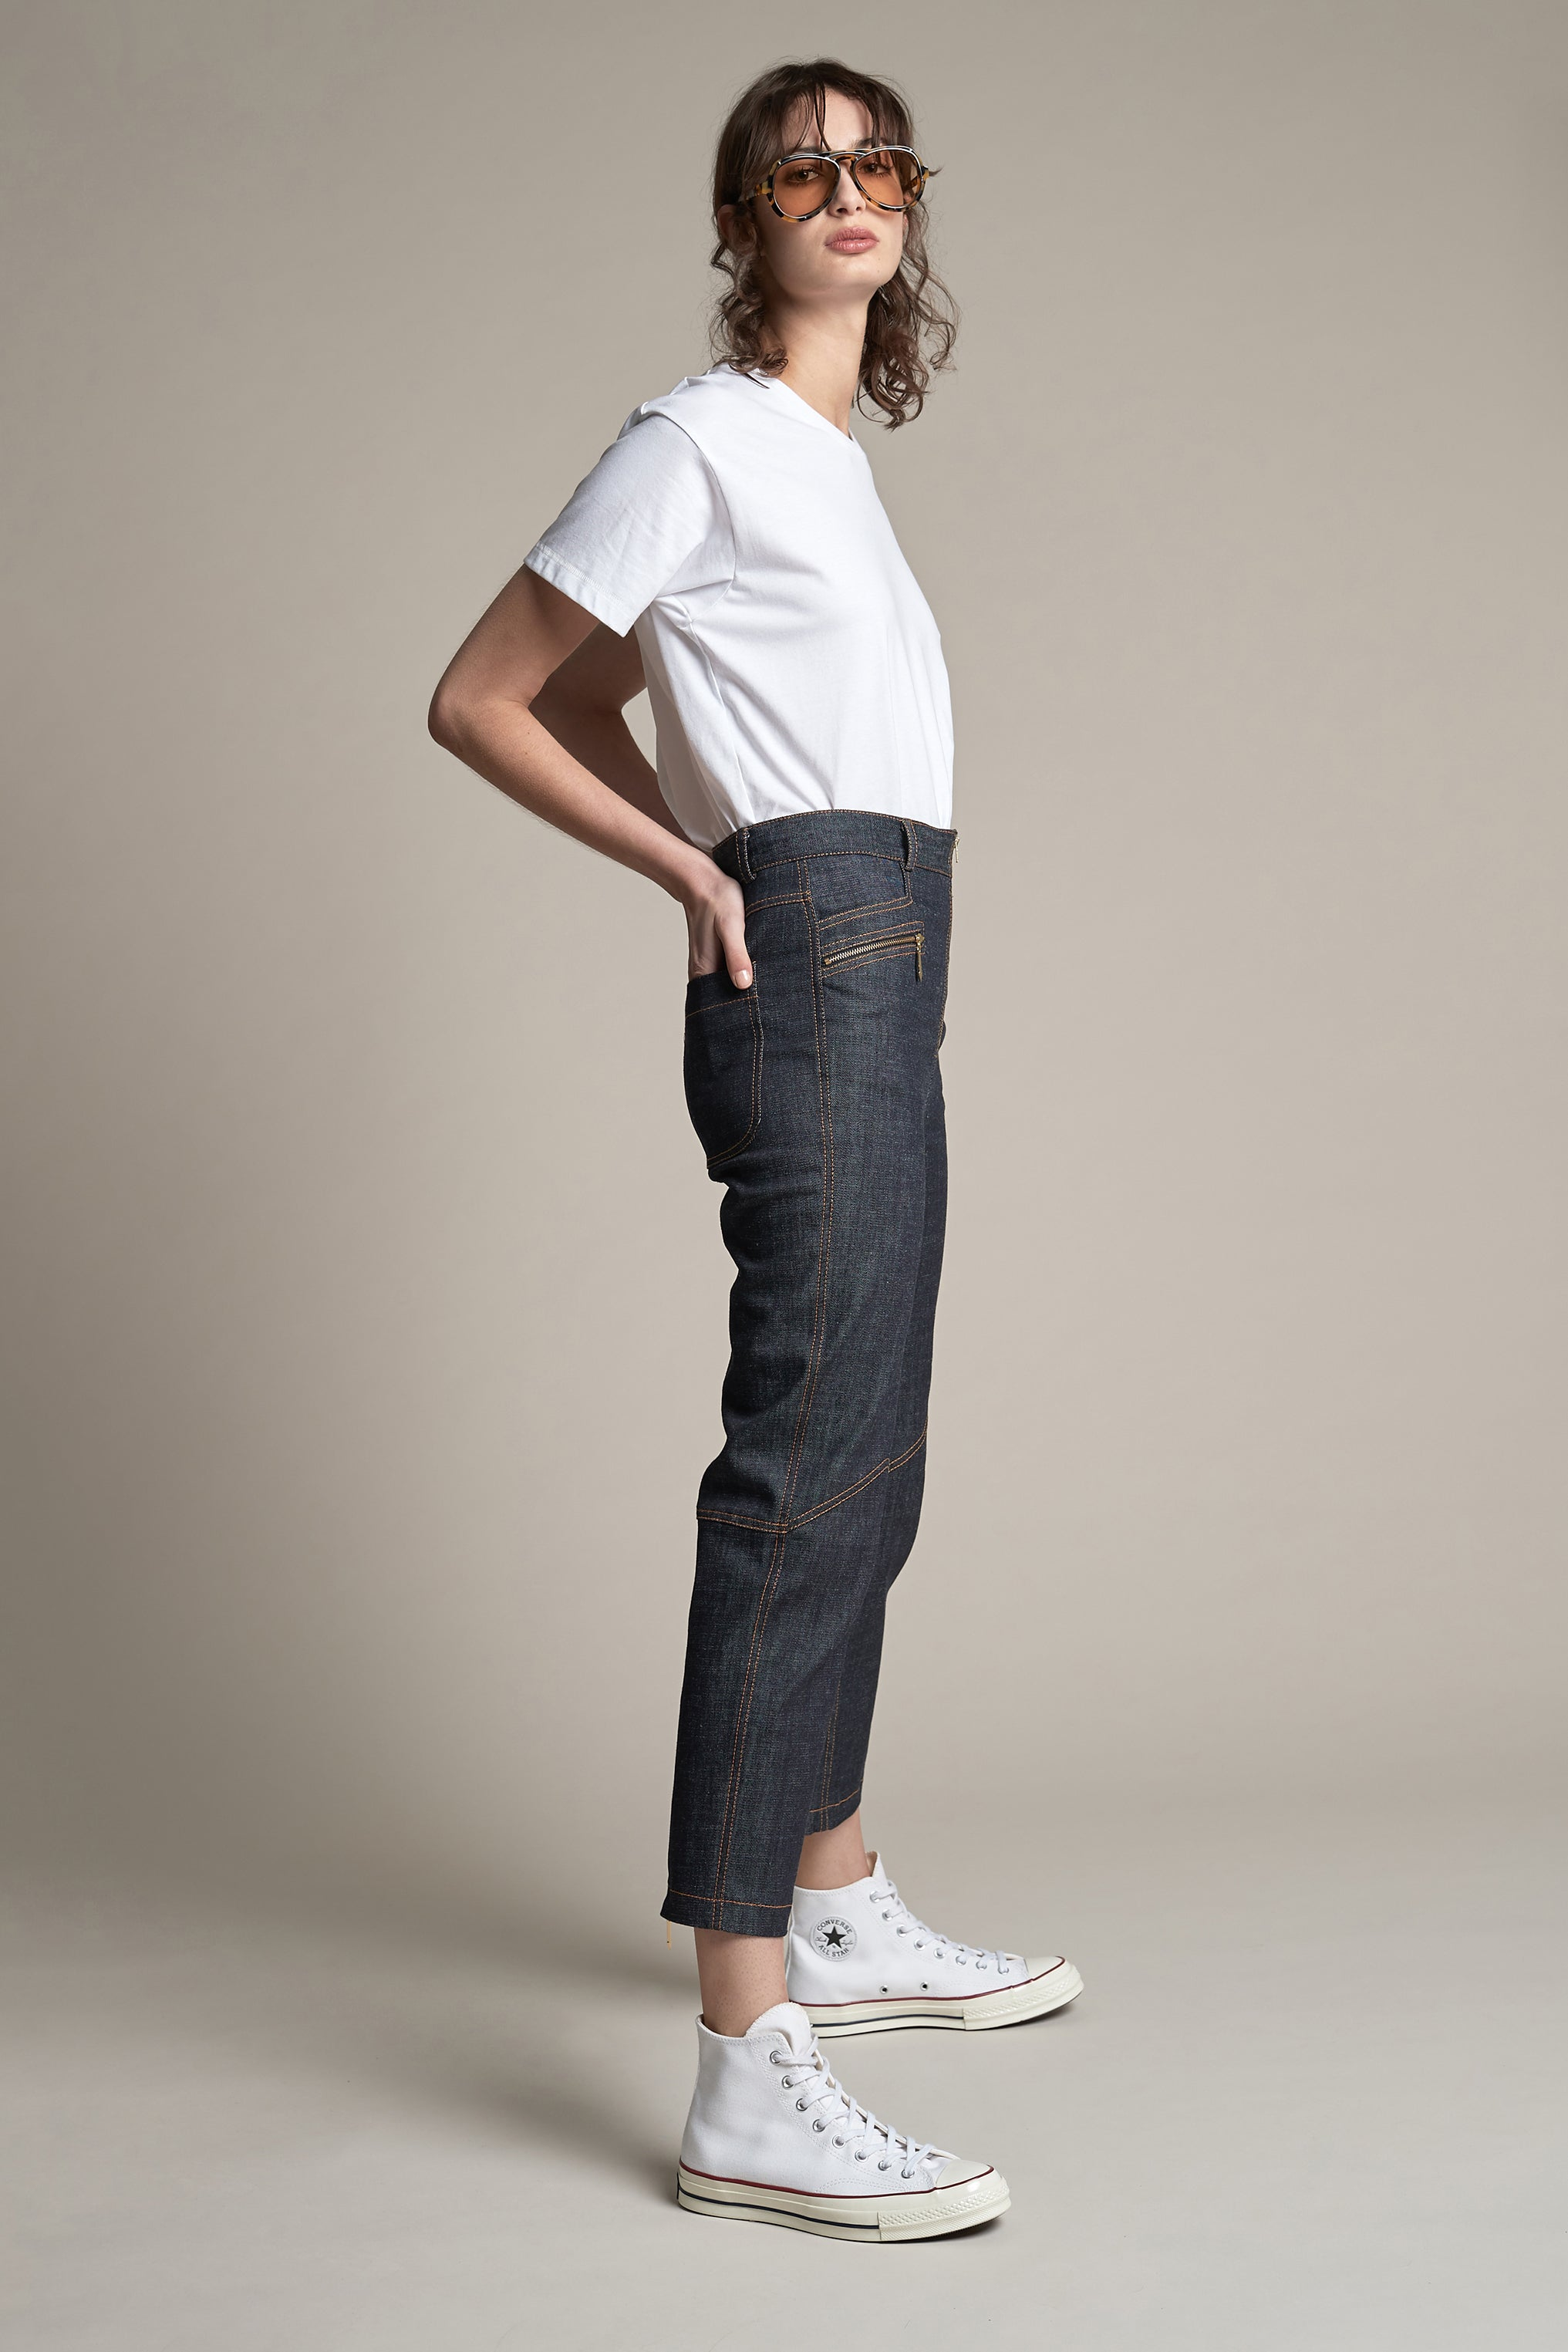 Woman wearing indigo Outland Denim x Karen Walker jeans